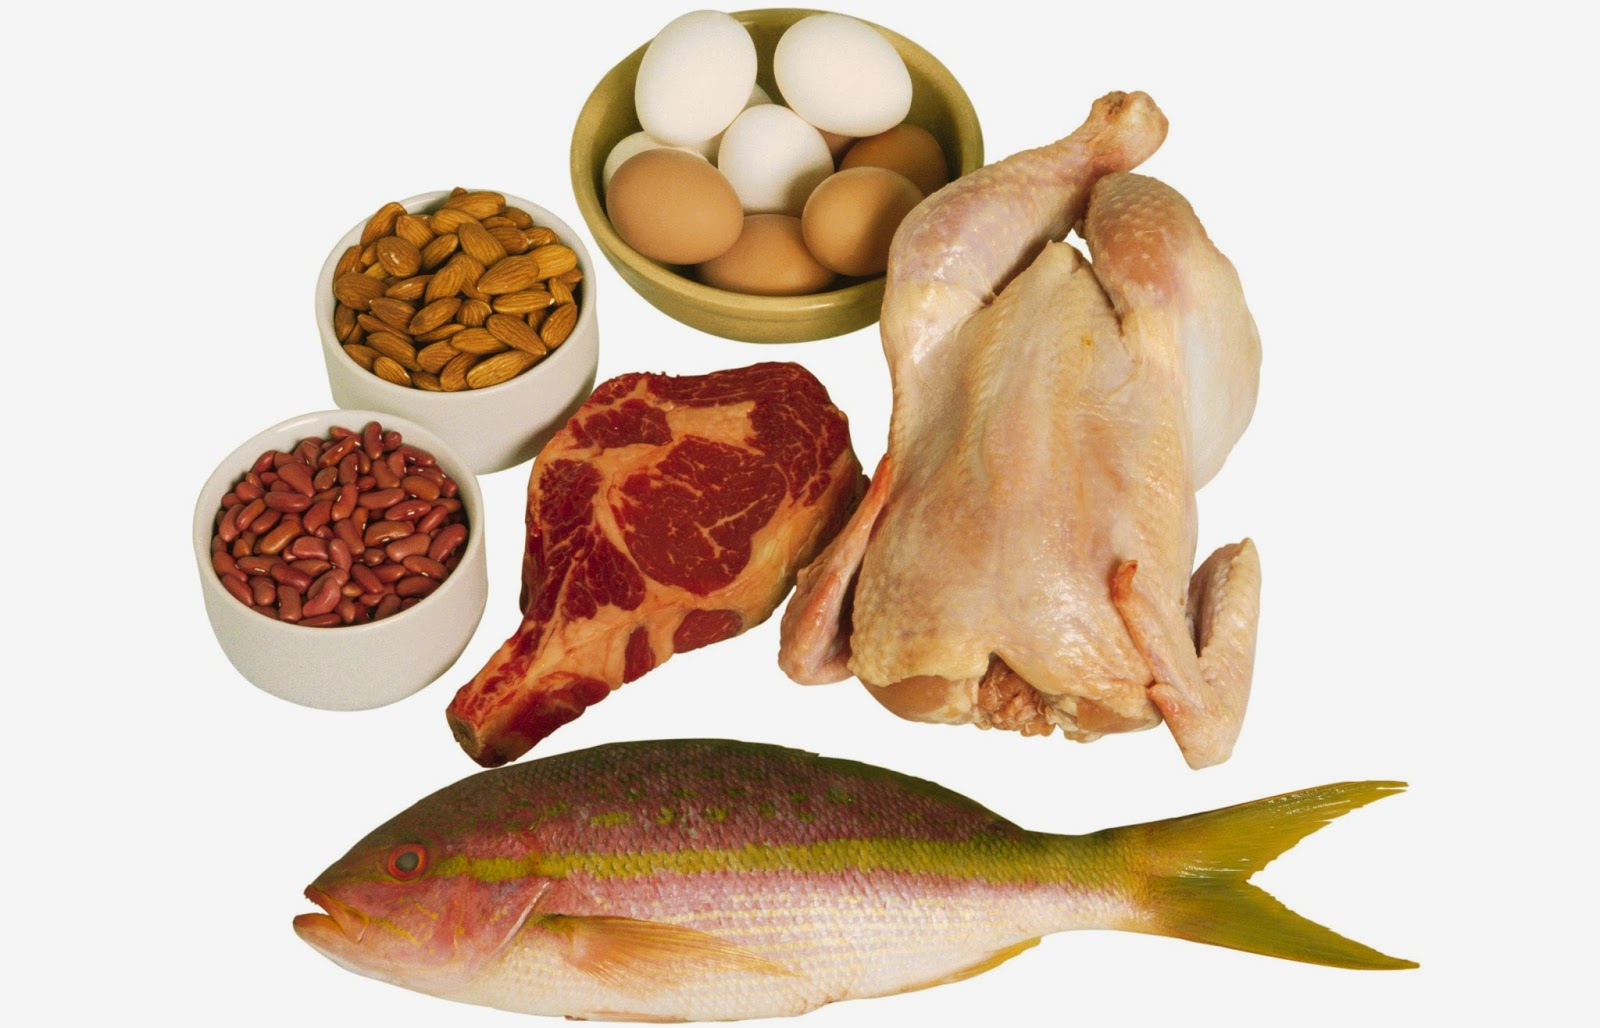 Enrich your foods with proteins